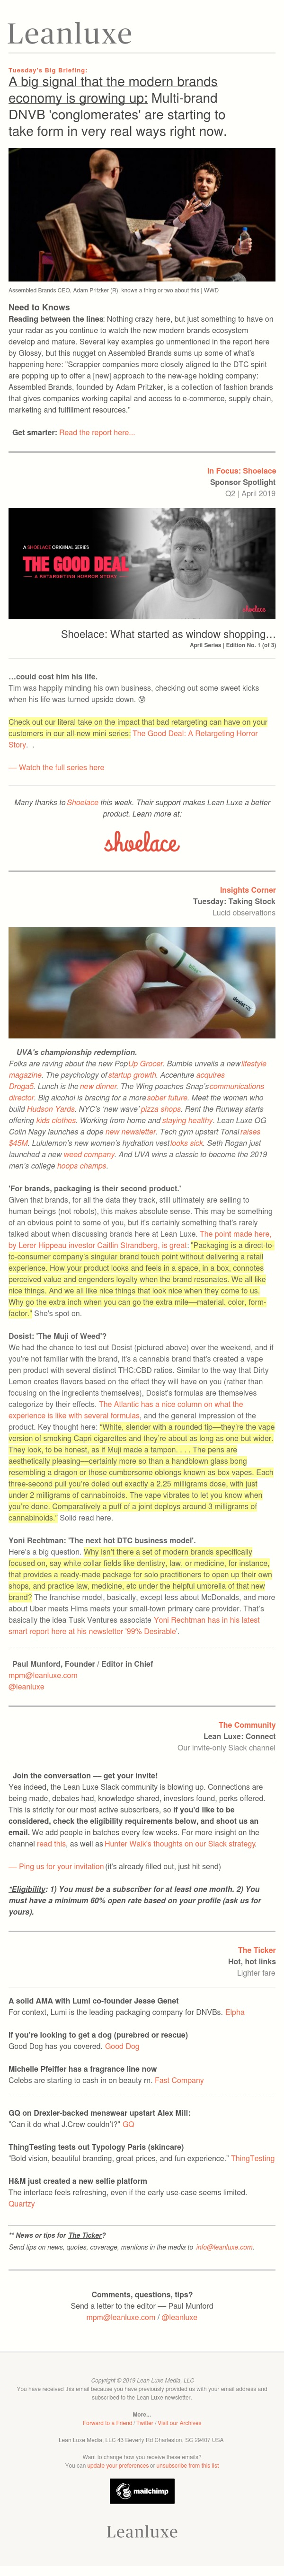 (Late) Debrief No. 286: The rise of the DNVB conglomerates — Is Dosist the 'Muji of weed'?